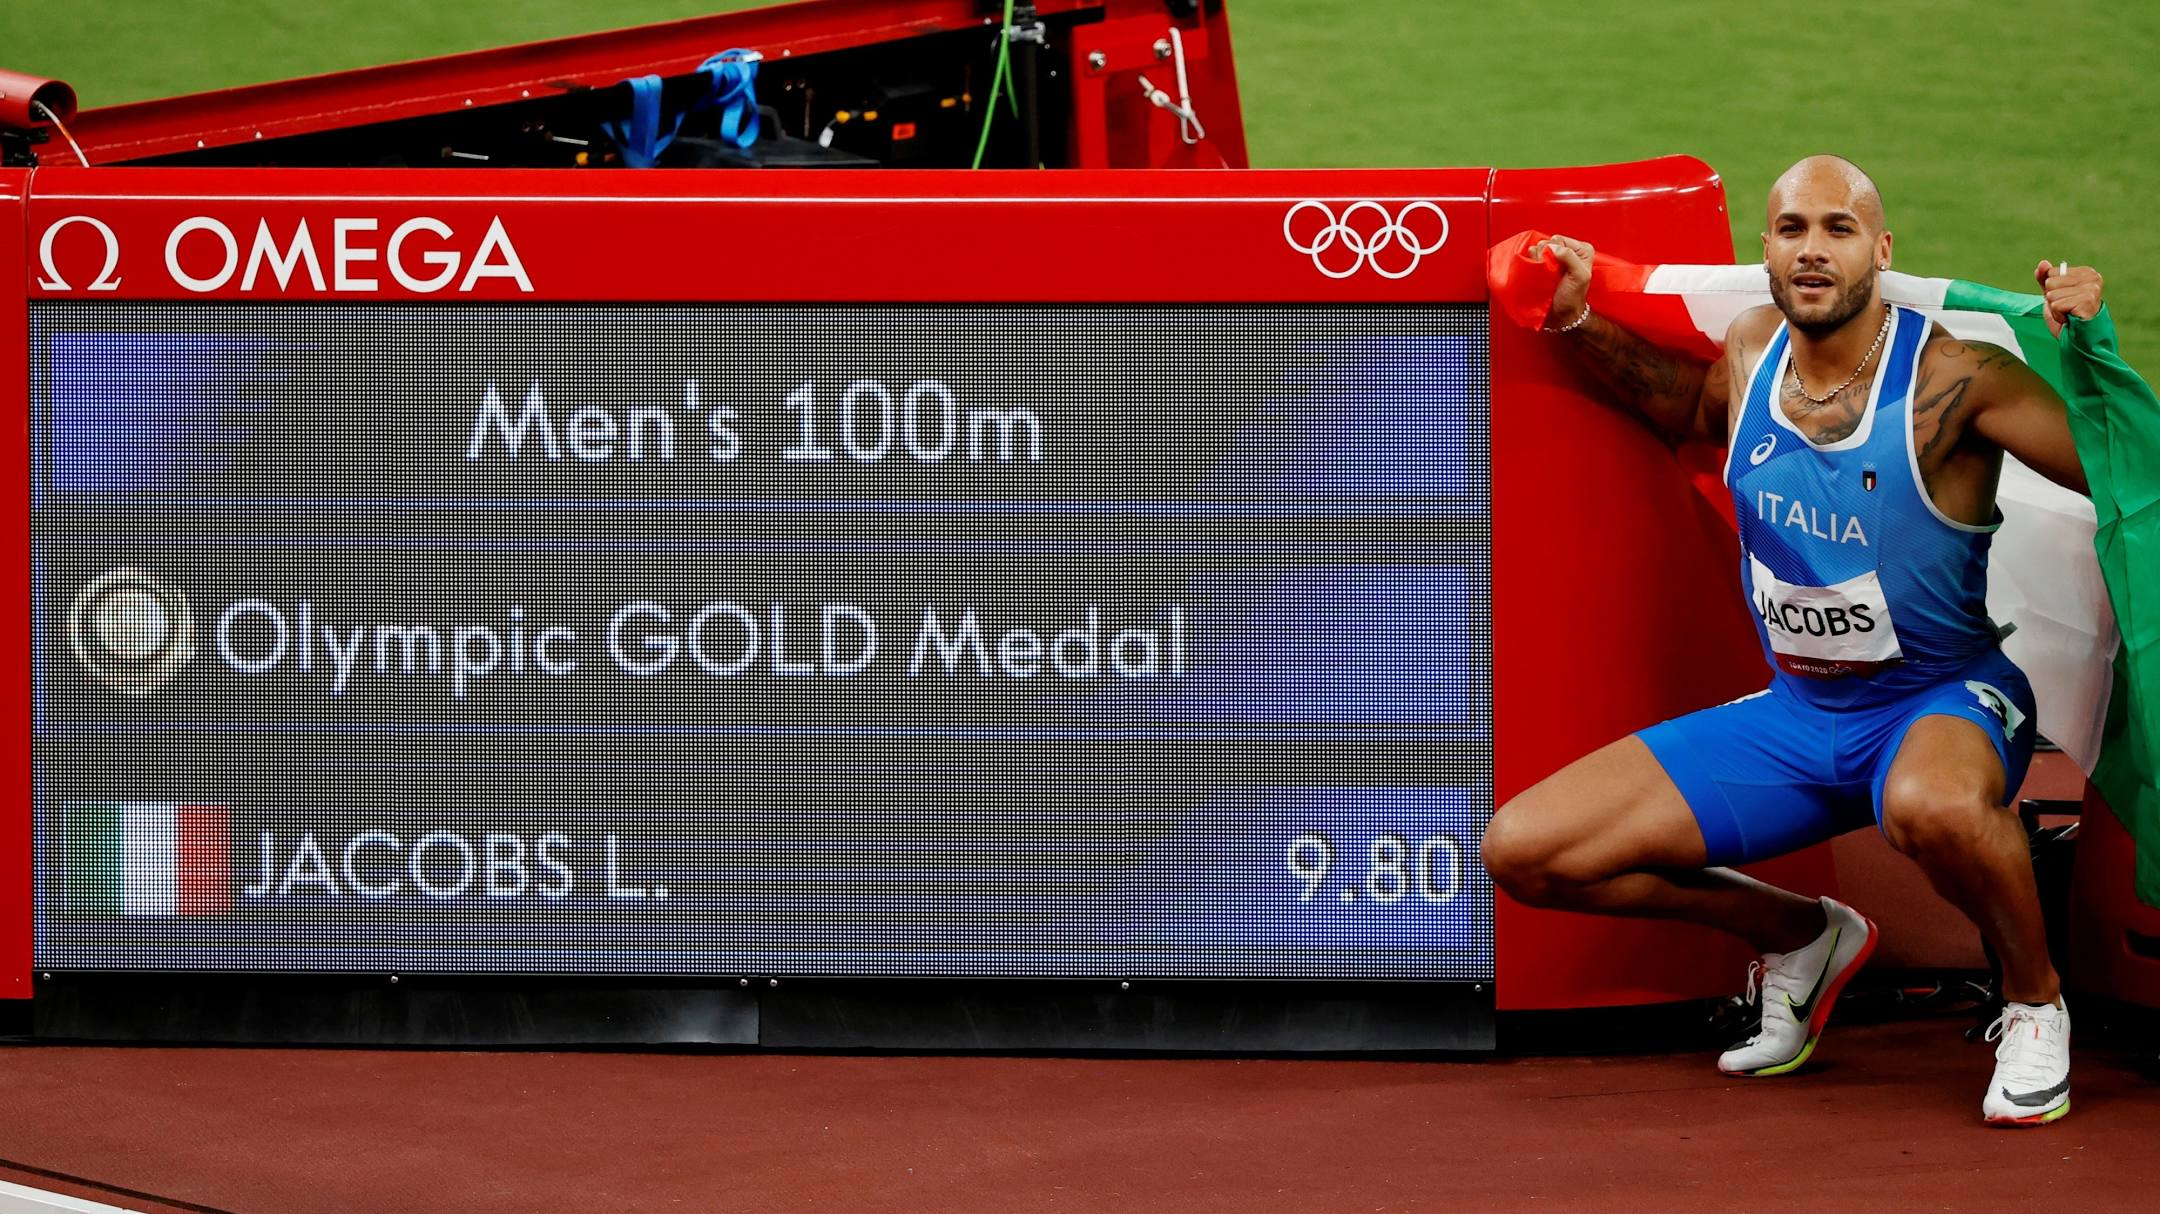 Tokyo 2020: Jacobs creates history as first Italian to win gold